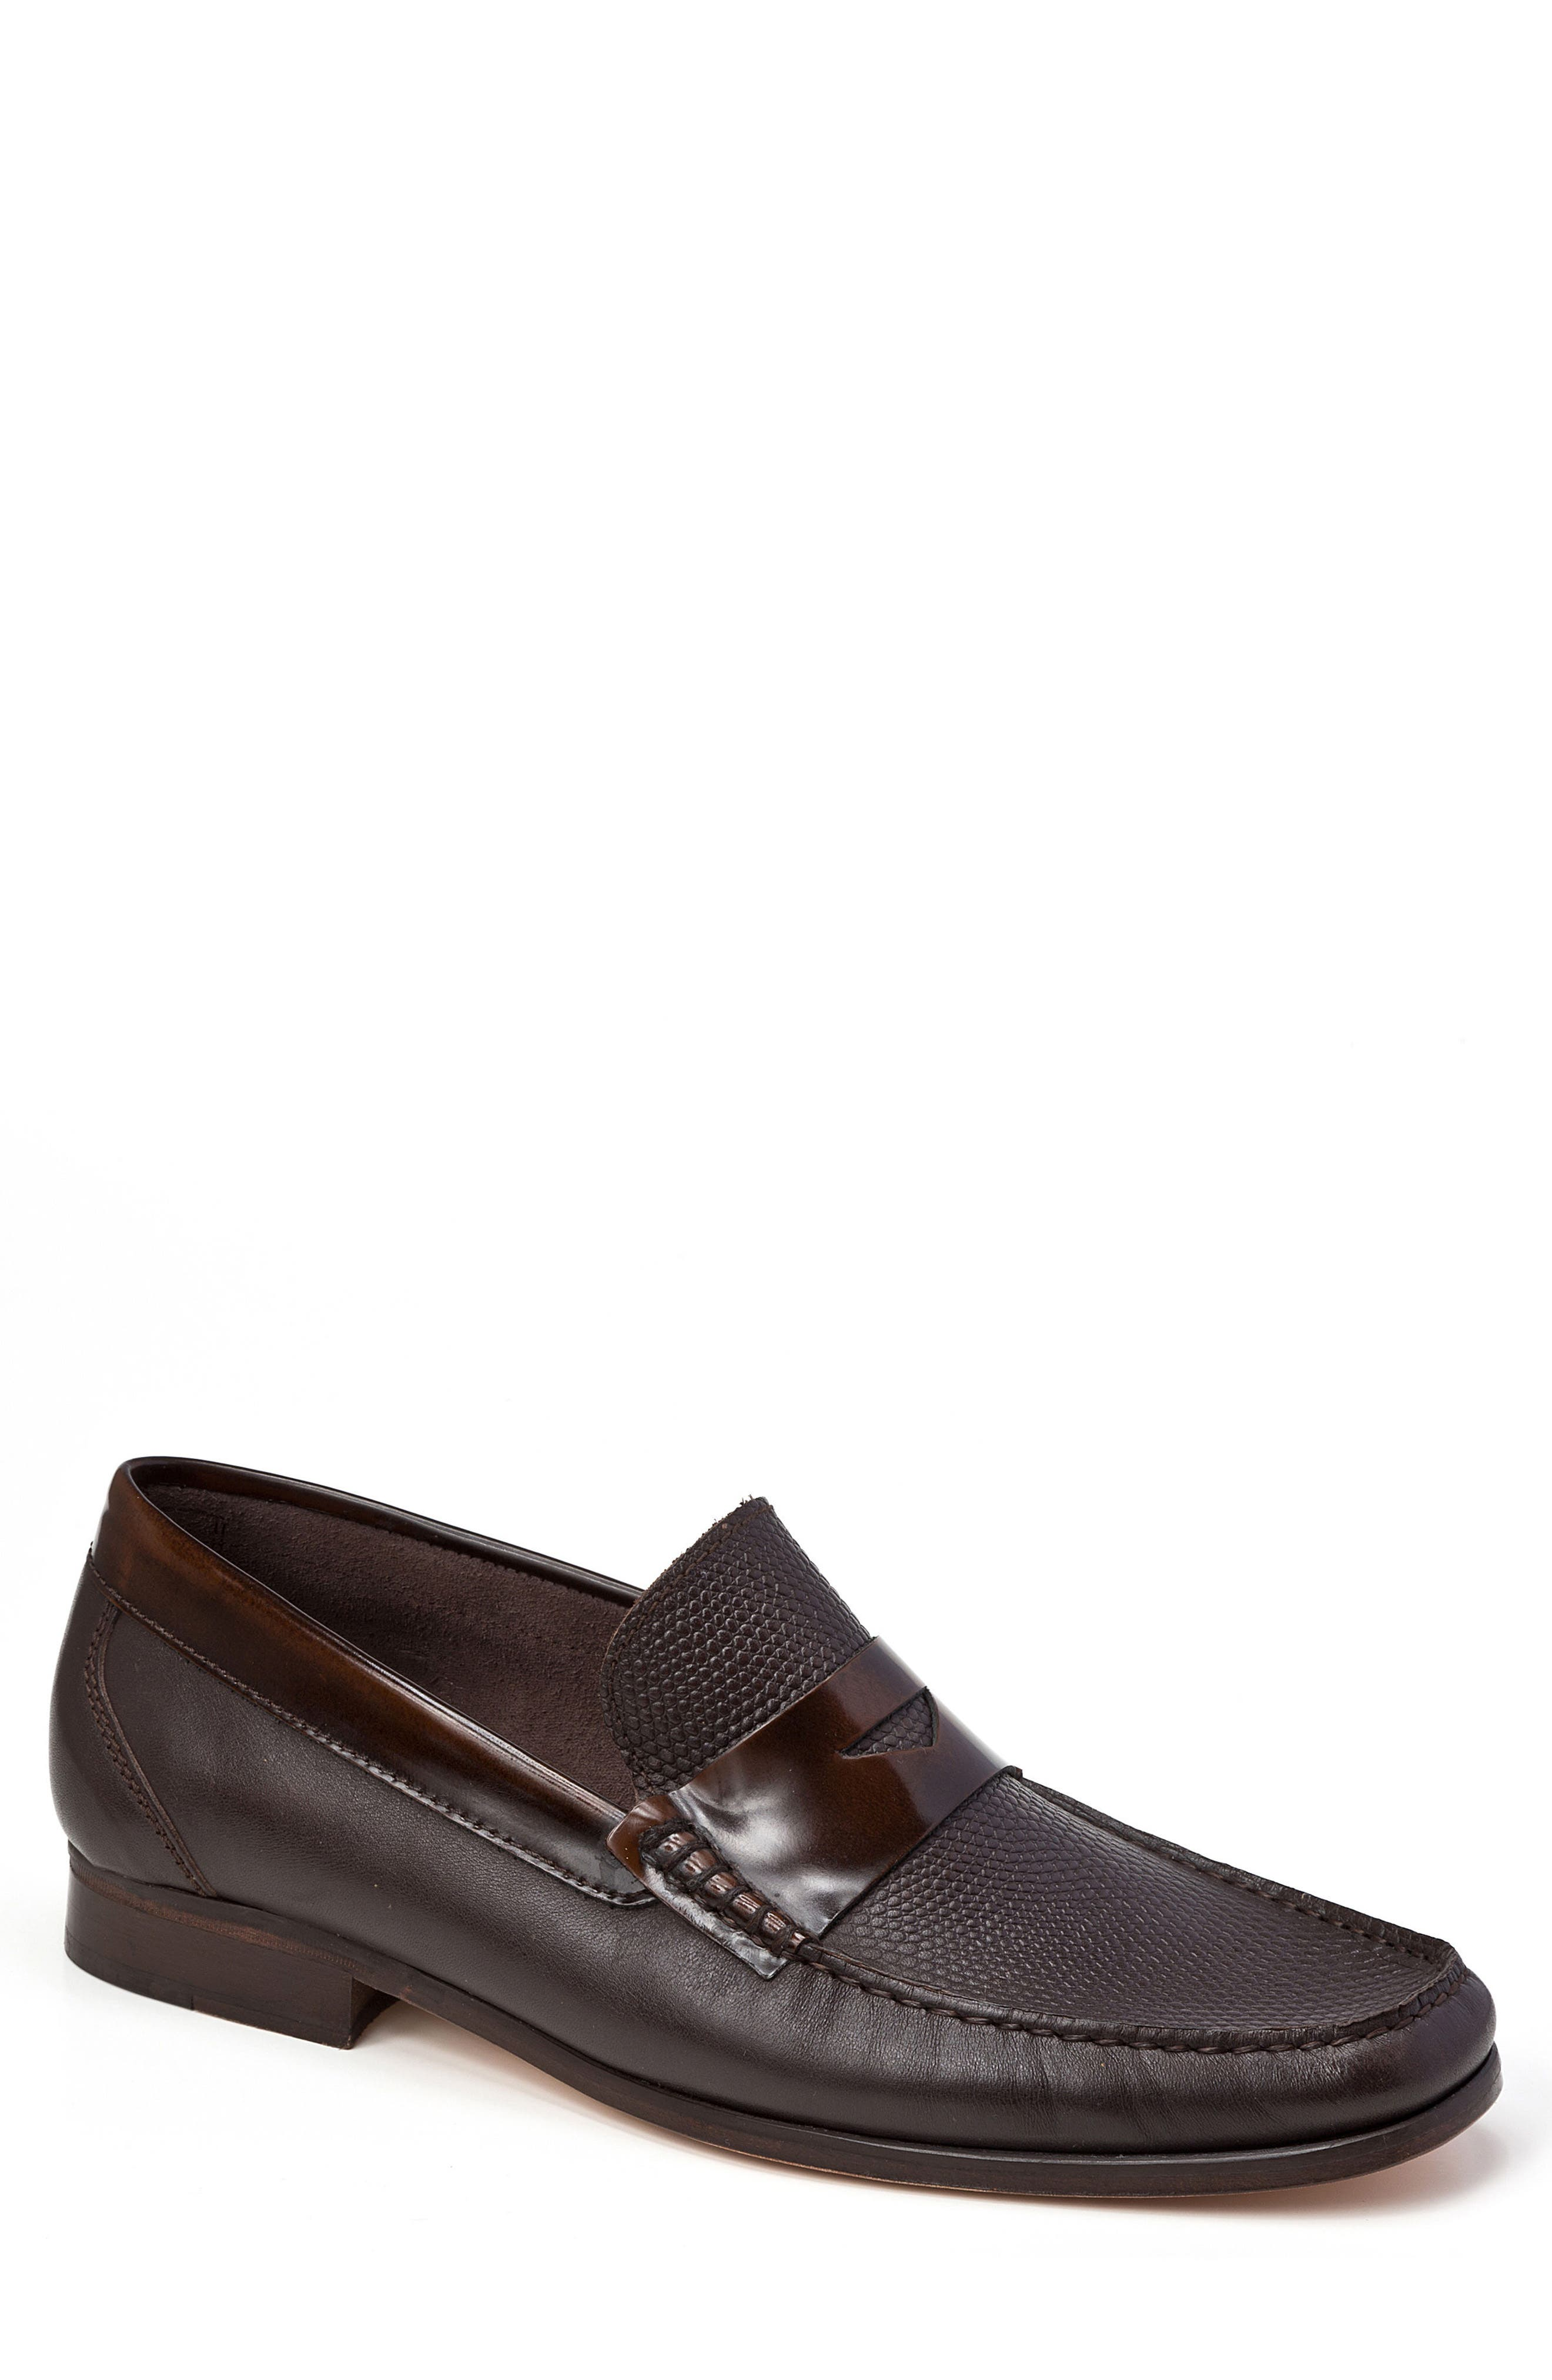 SANDRO MOSCOLONI,                             Bilbao Pebble Embossed Penny Loafer,                             Main thumbnail 1, color,                             BROWN